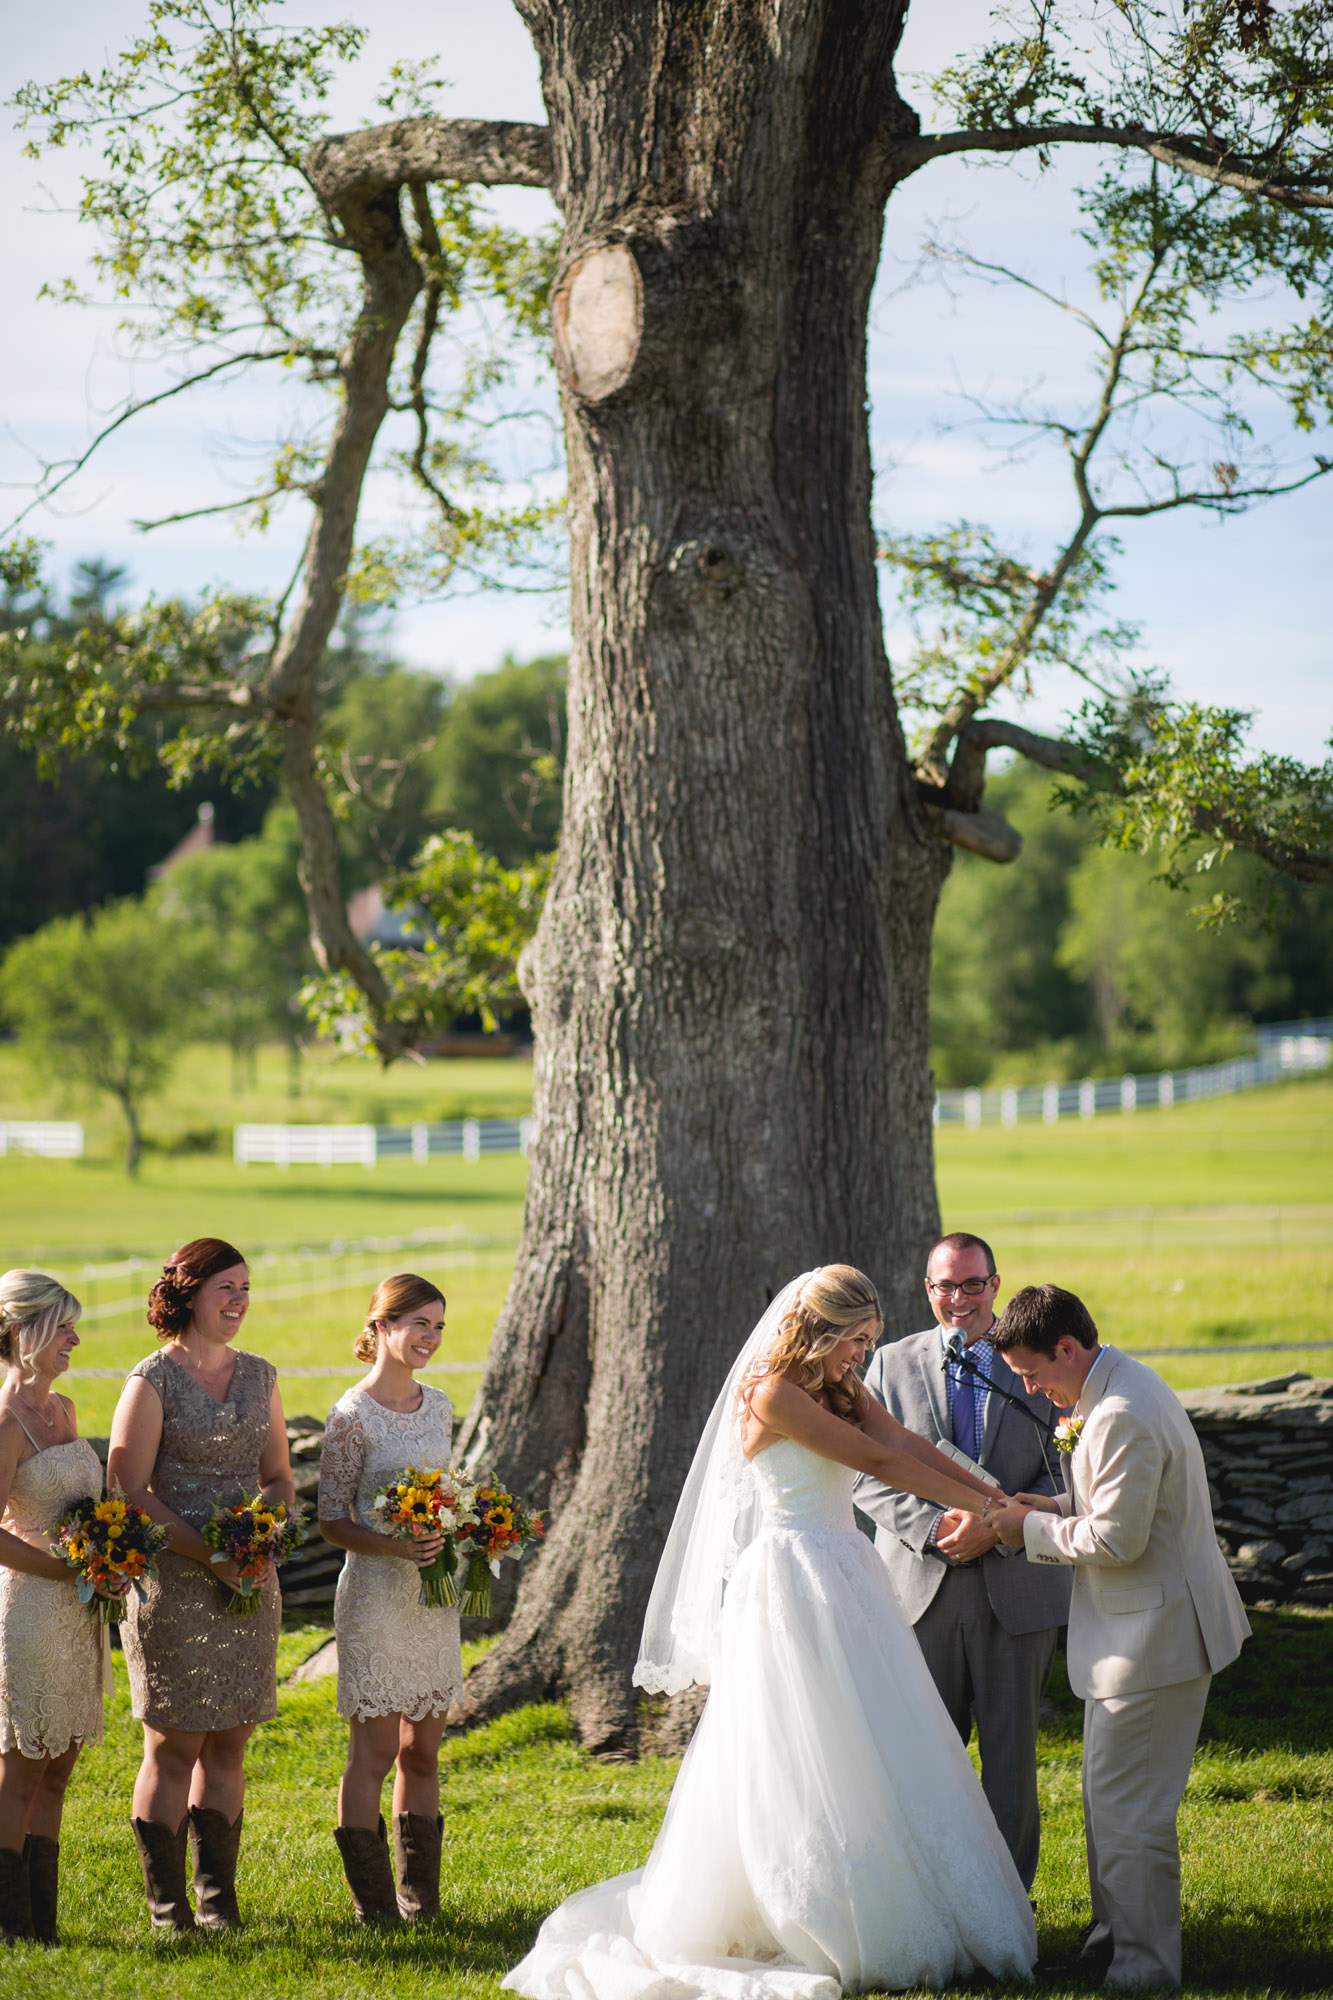 Emily & Craig Friedman Farms Wedding 070